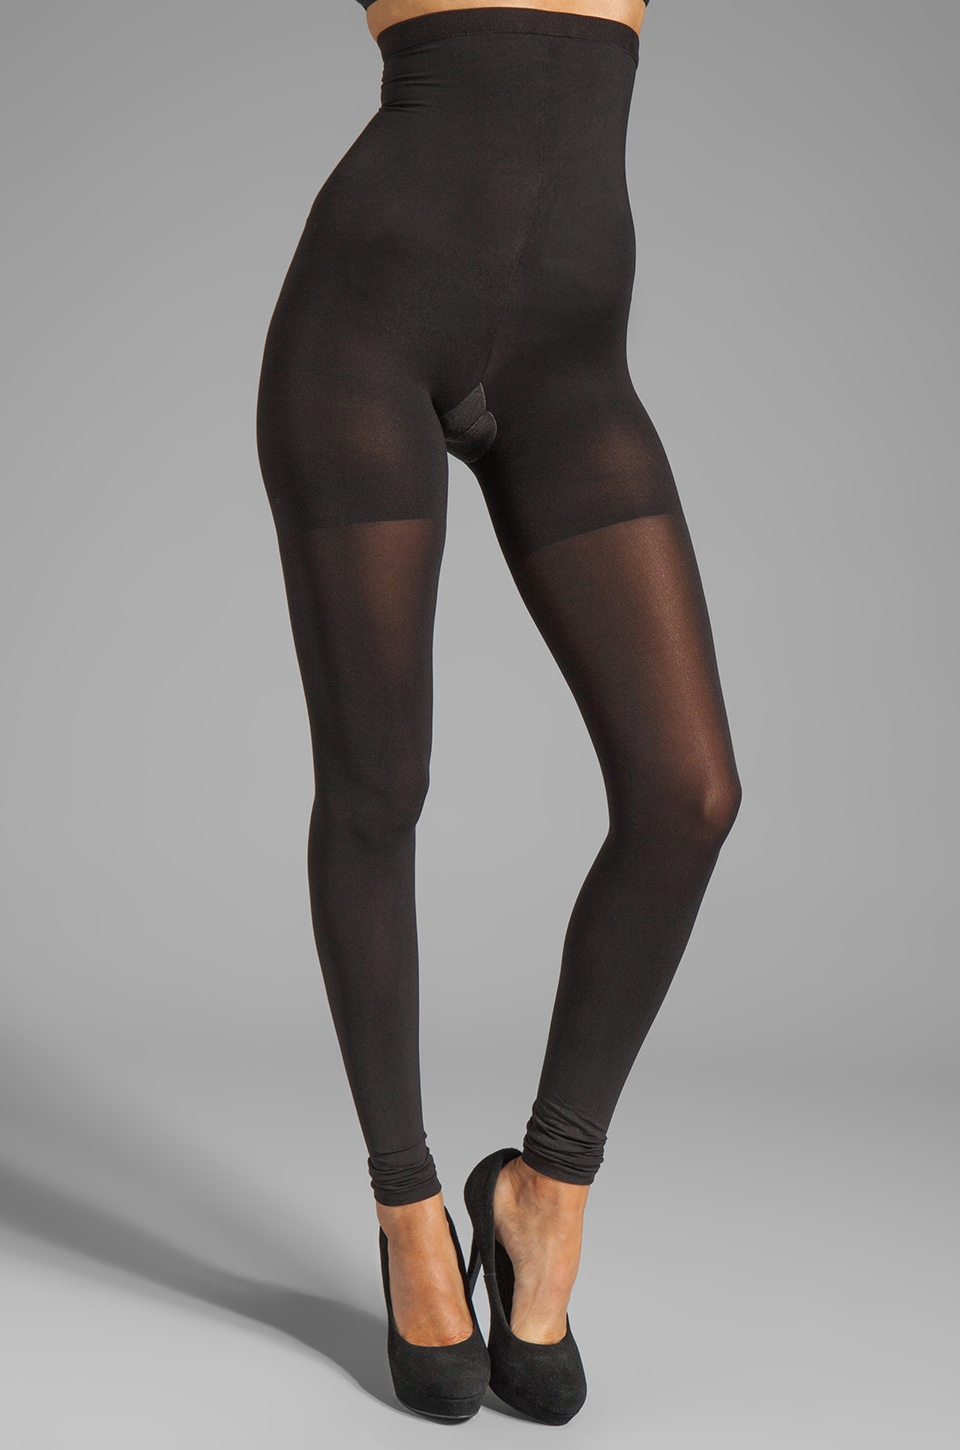 SPANX High-Waisted Convertible Legging in Black